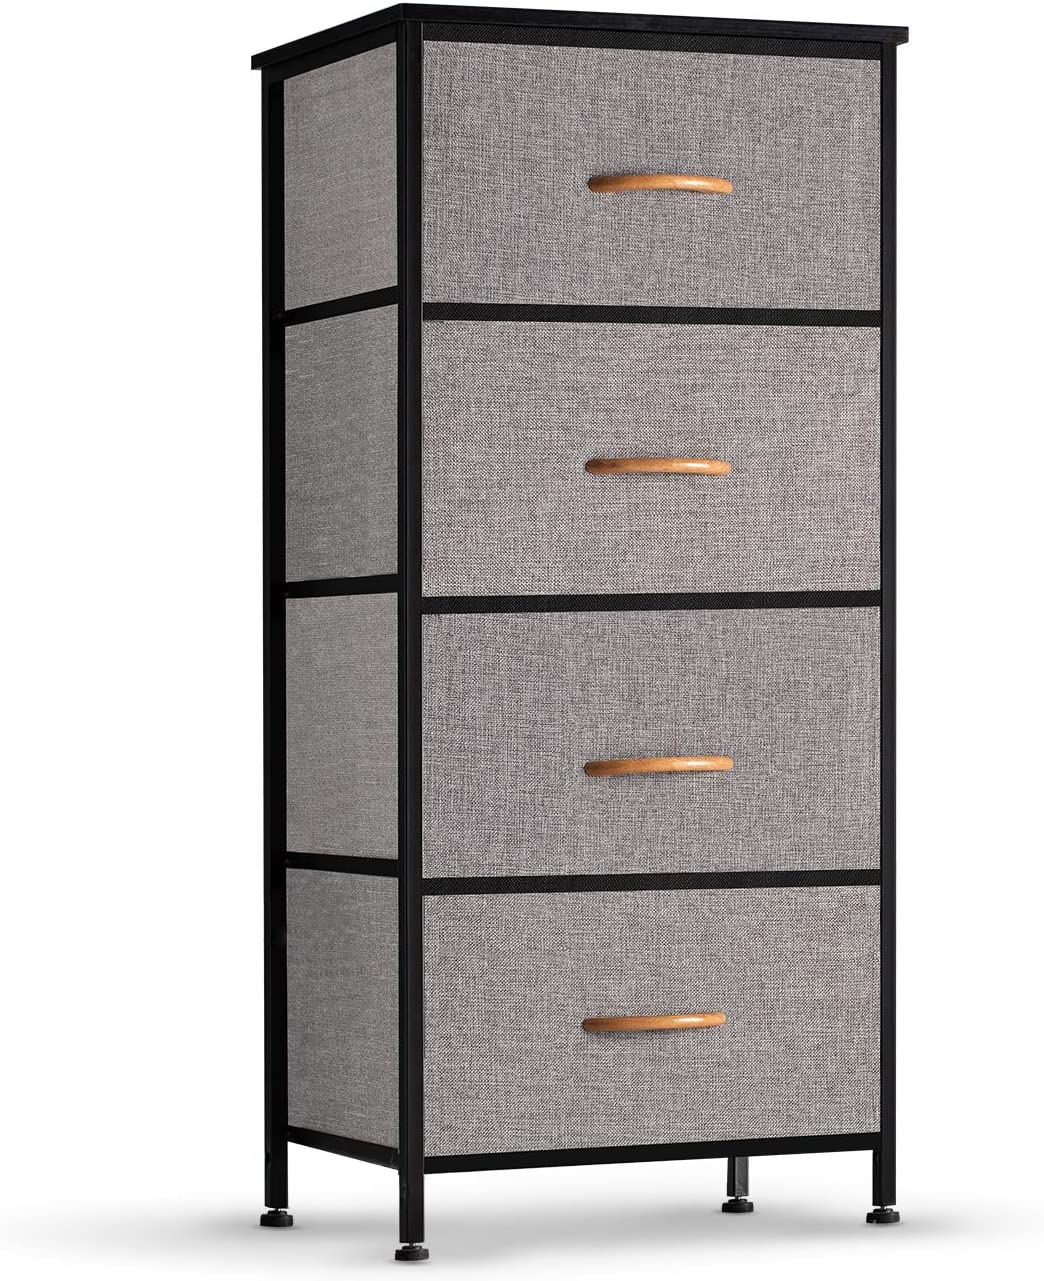 COSYLAND 4 Drawer Dresser Storage Tower, Fabric Organizer Unit Stable for Bedroom, Closet, Entryway, Hallway, Nursery Room: Home & Kitchen